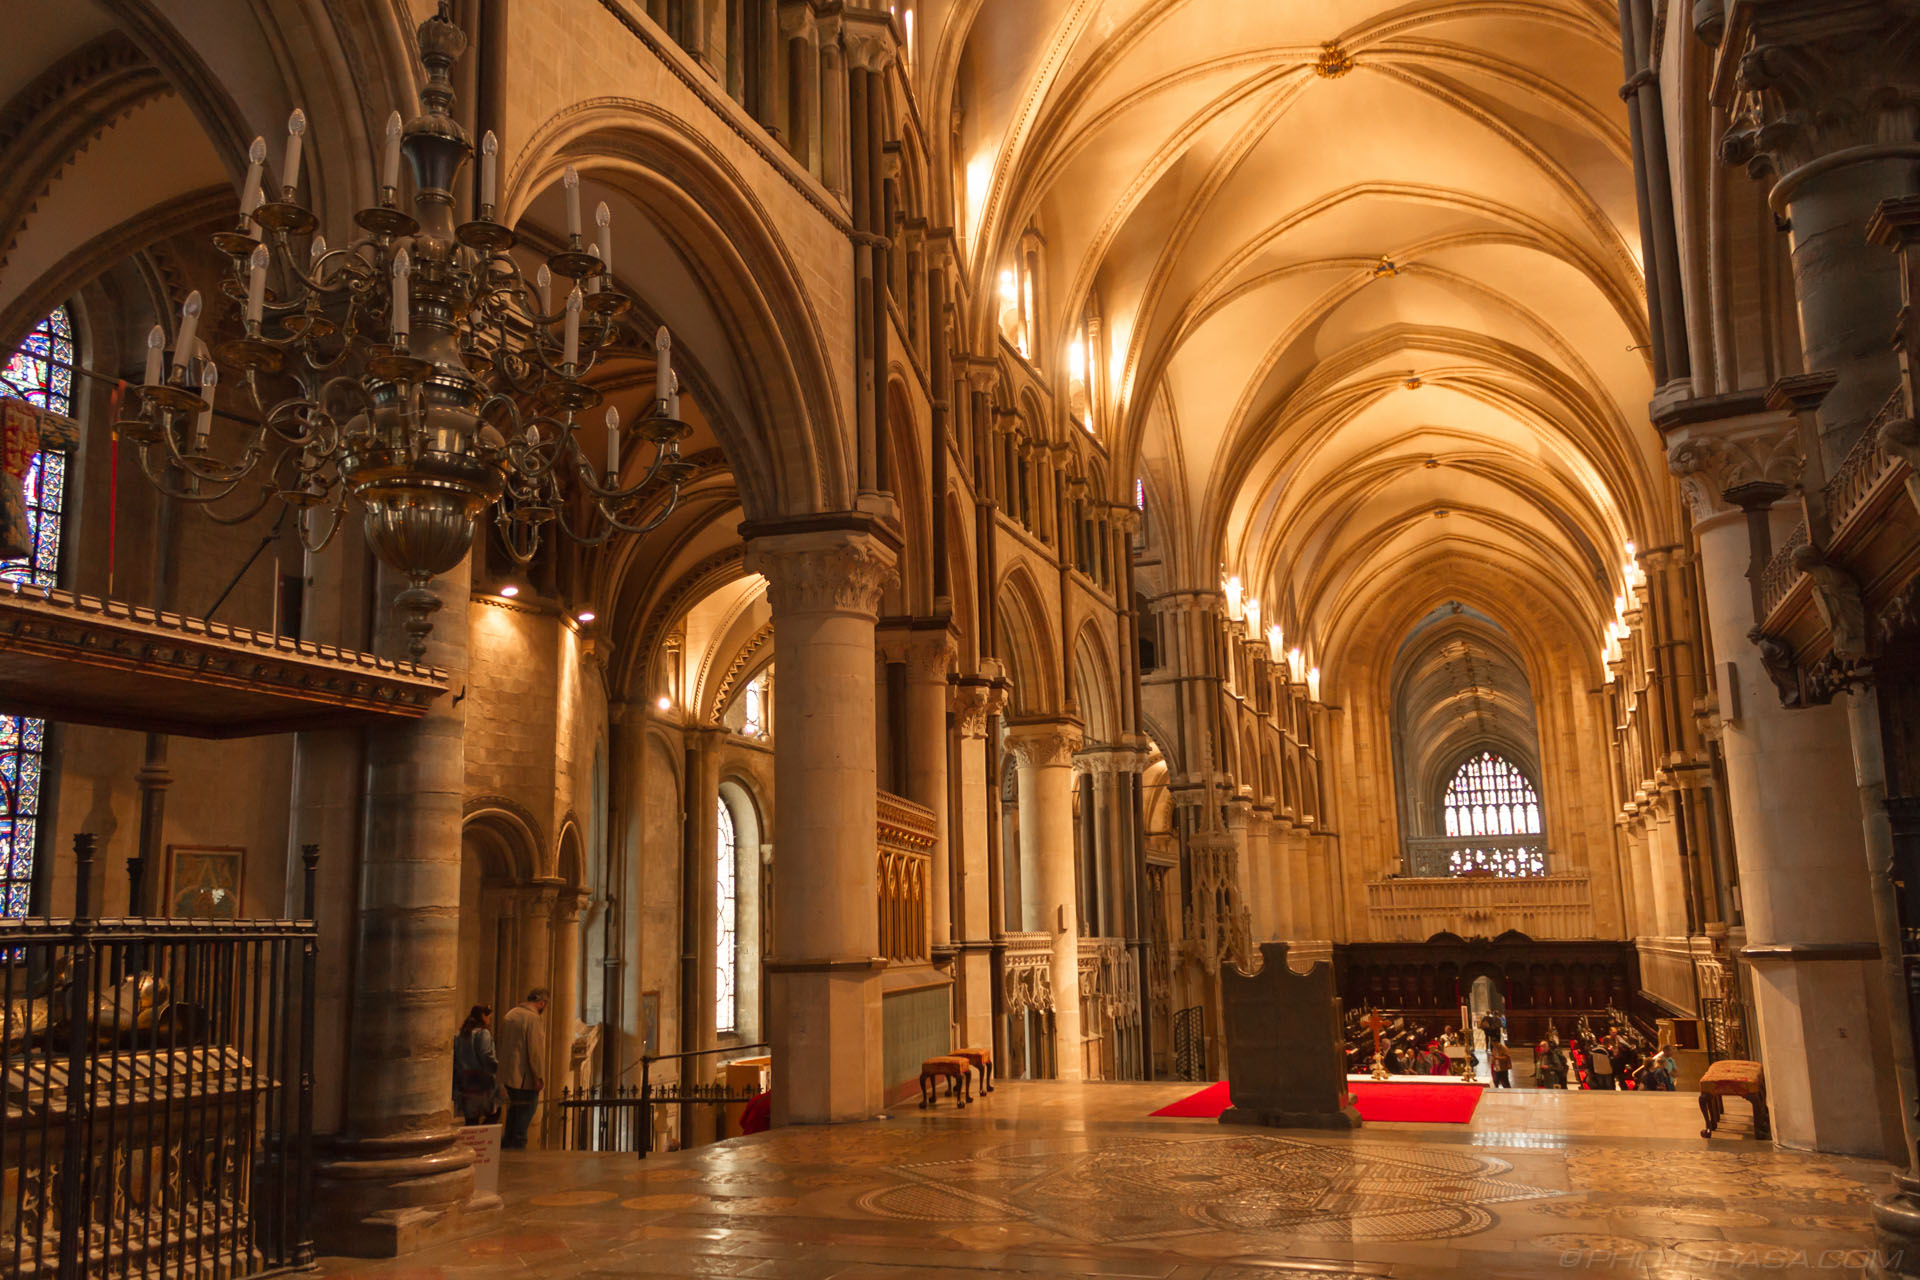 http://photorasa.com/canterbury-cathedral/interior-view-from-trinity-chapel/